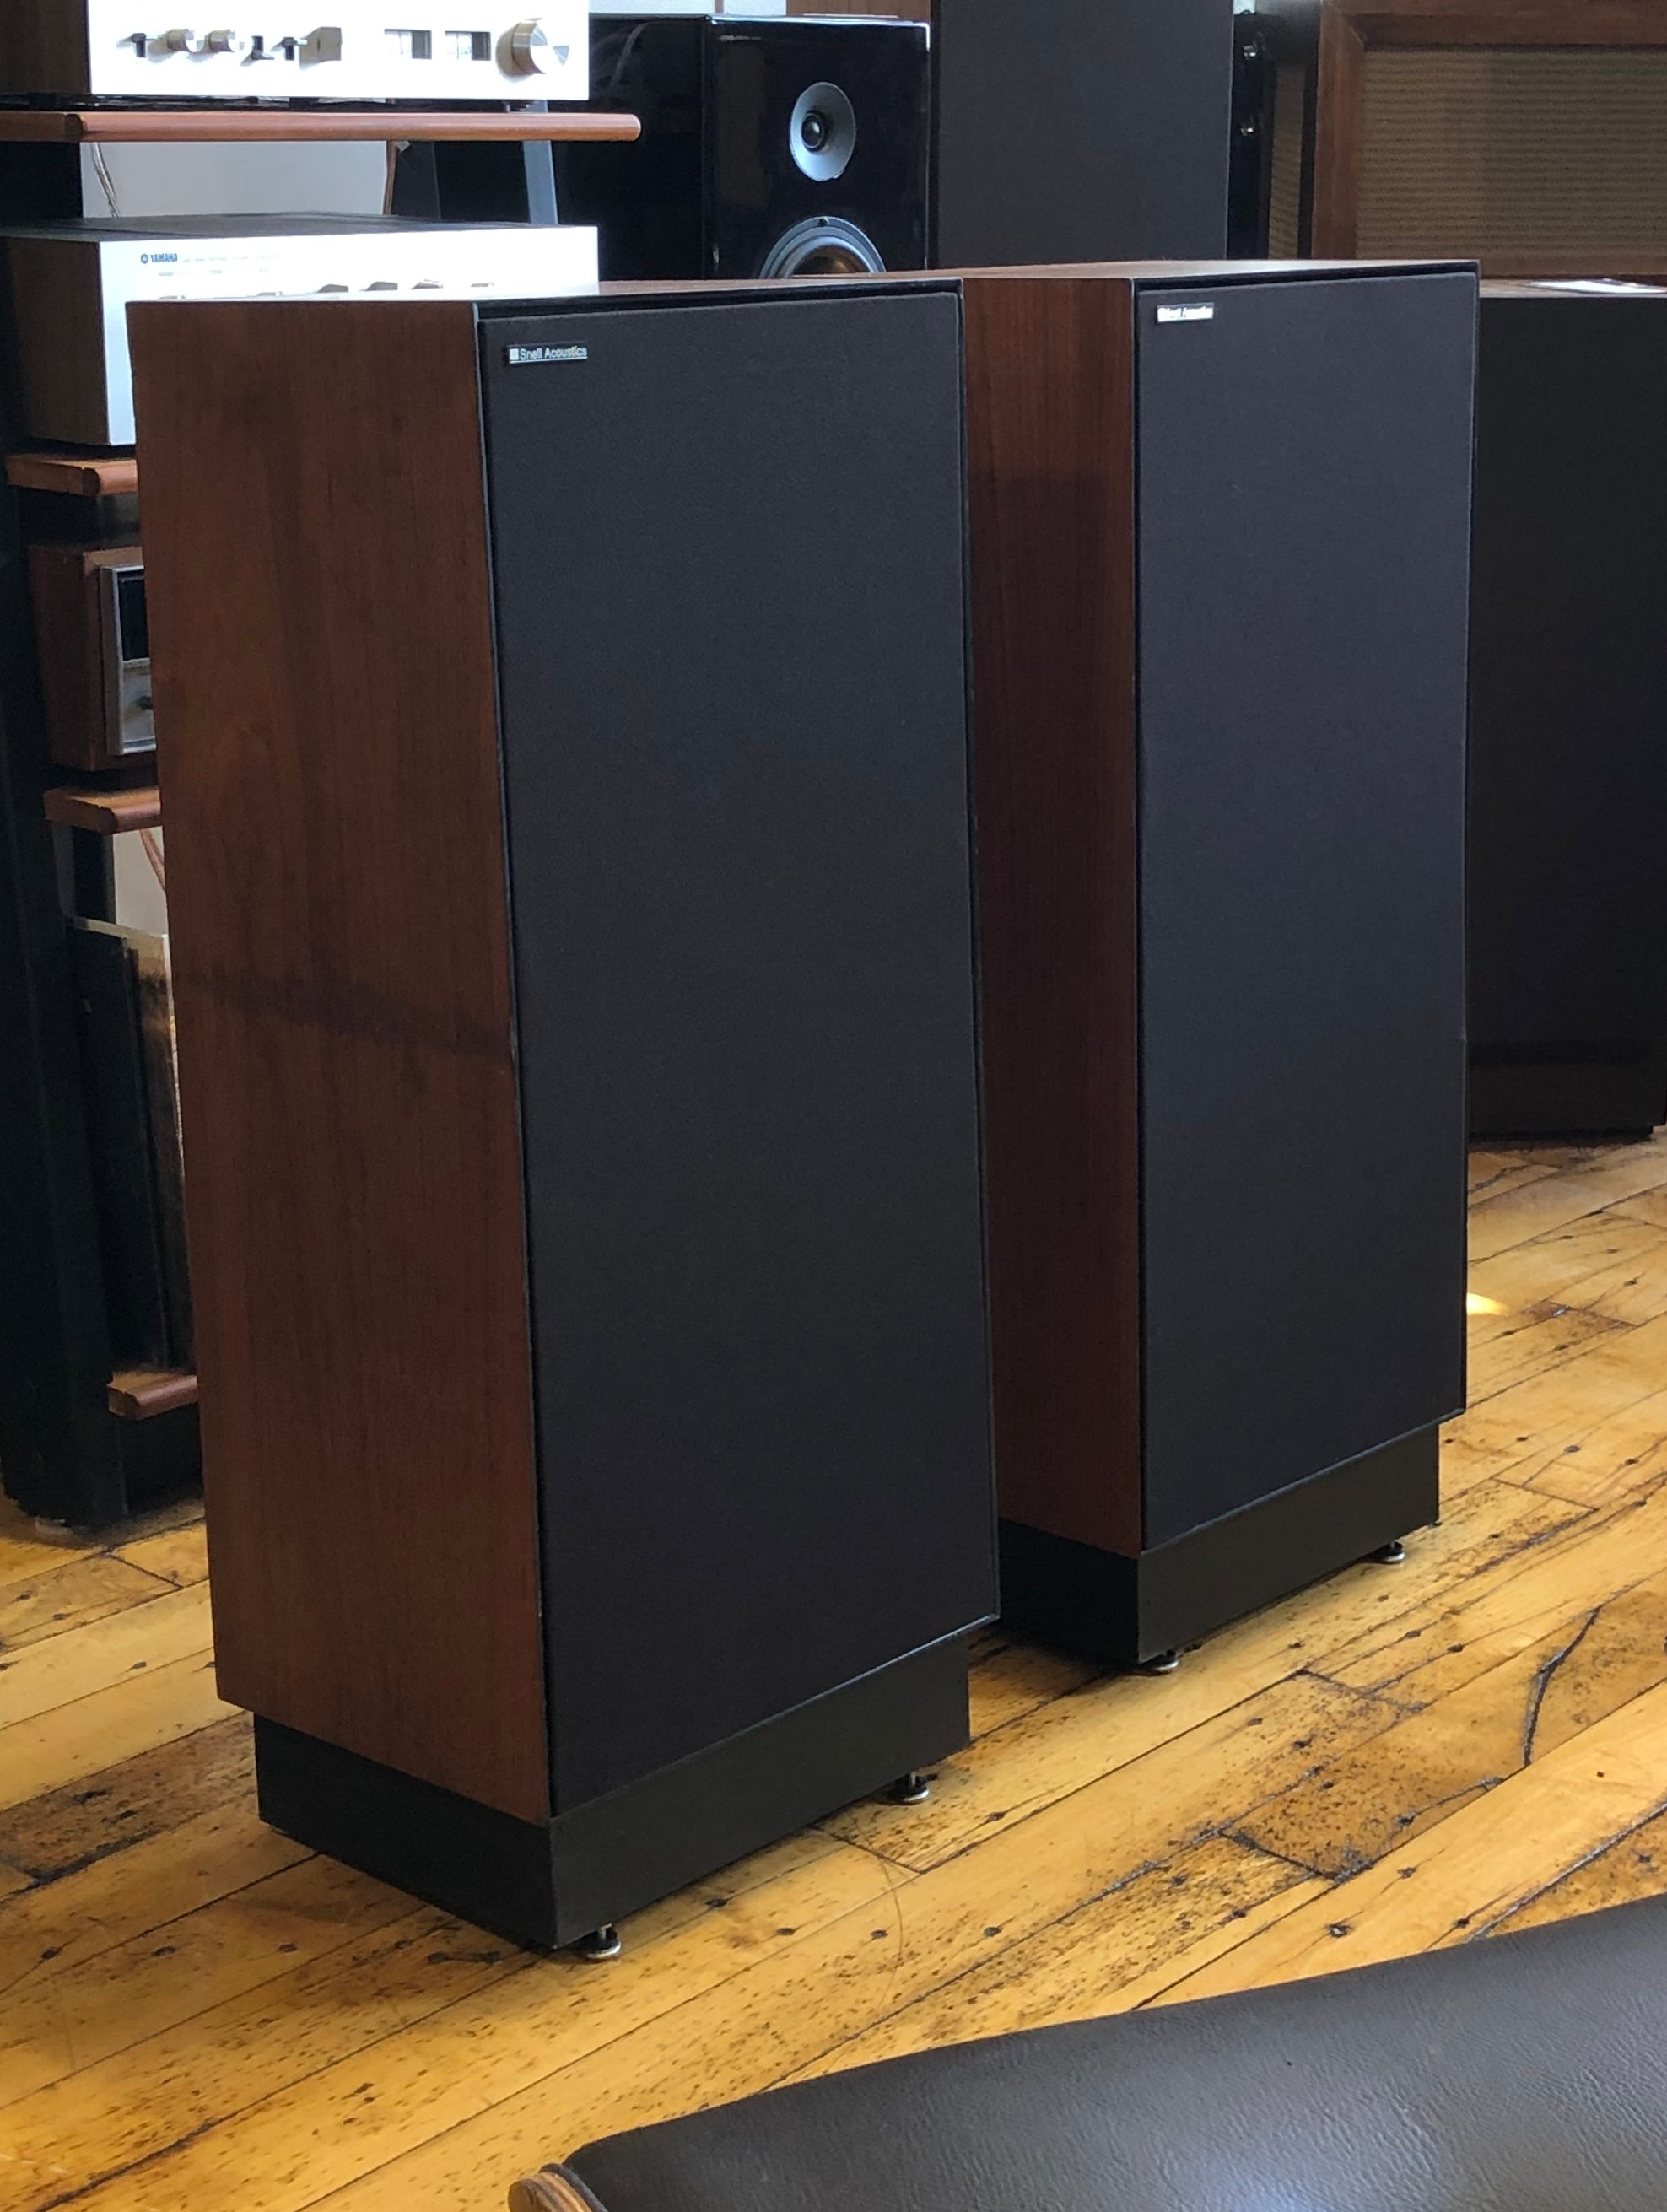 Snell Acoustics E-II Vintage Tower Loudspeakers